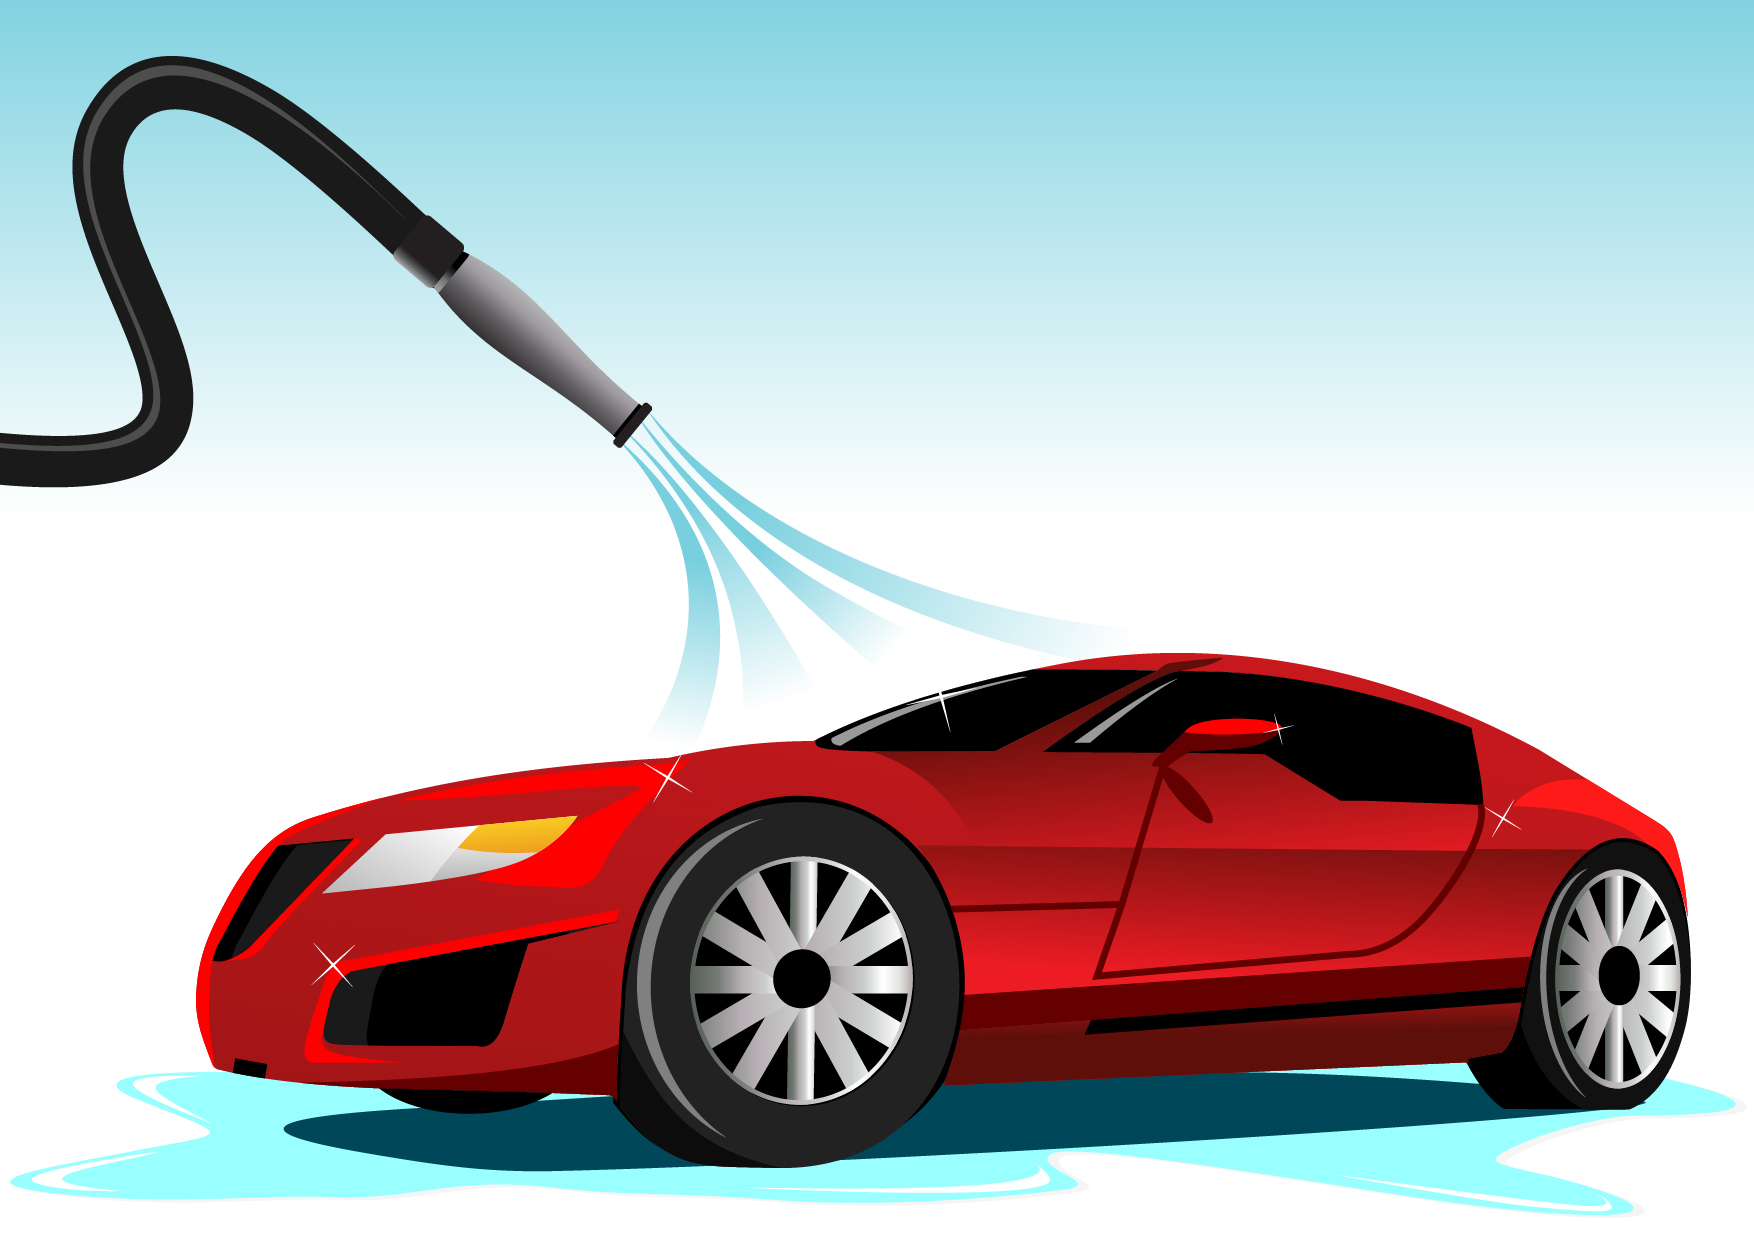 Treat Your Vehicle With Effective Car Wash Service